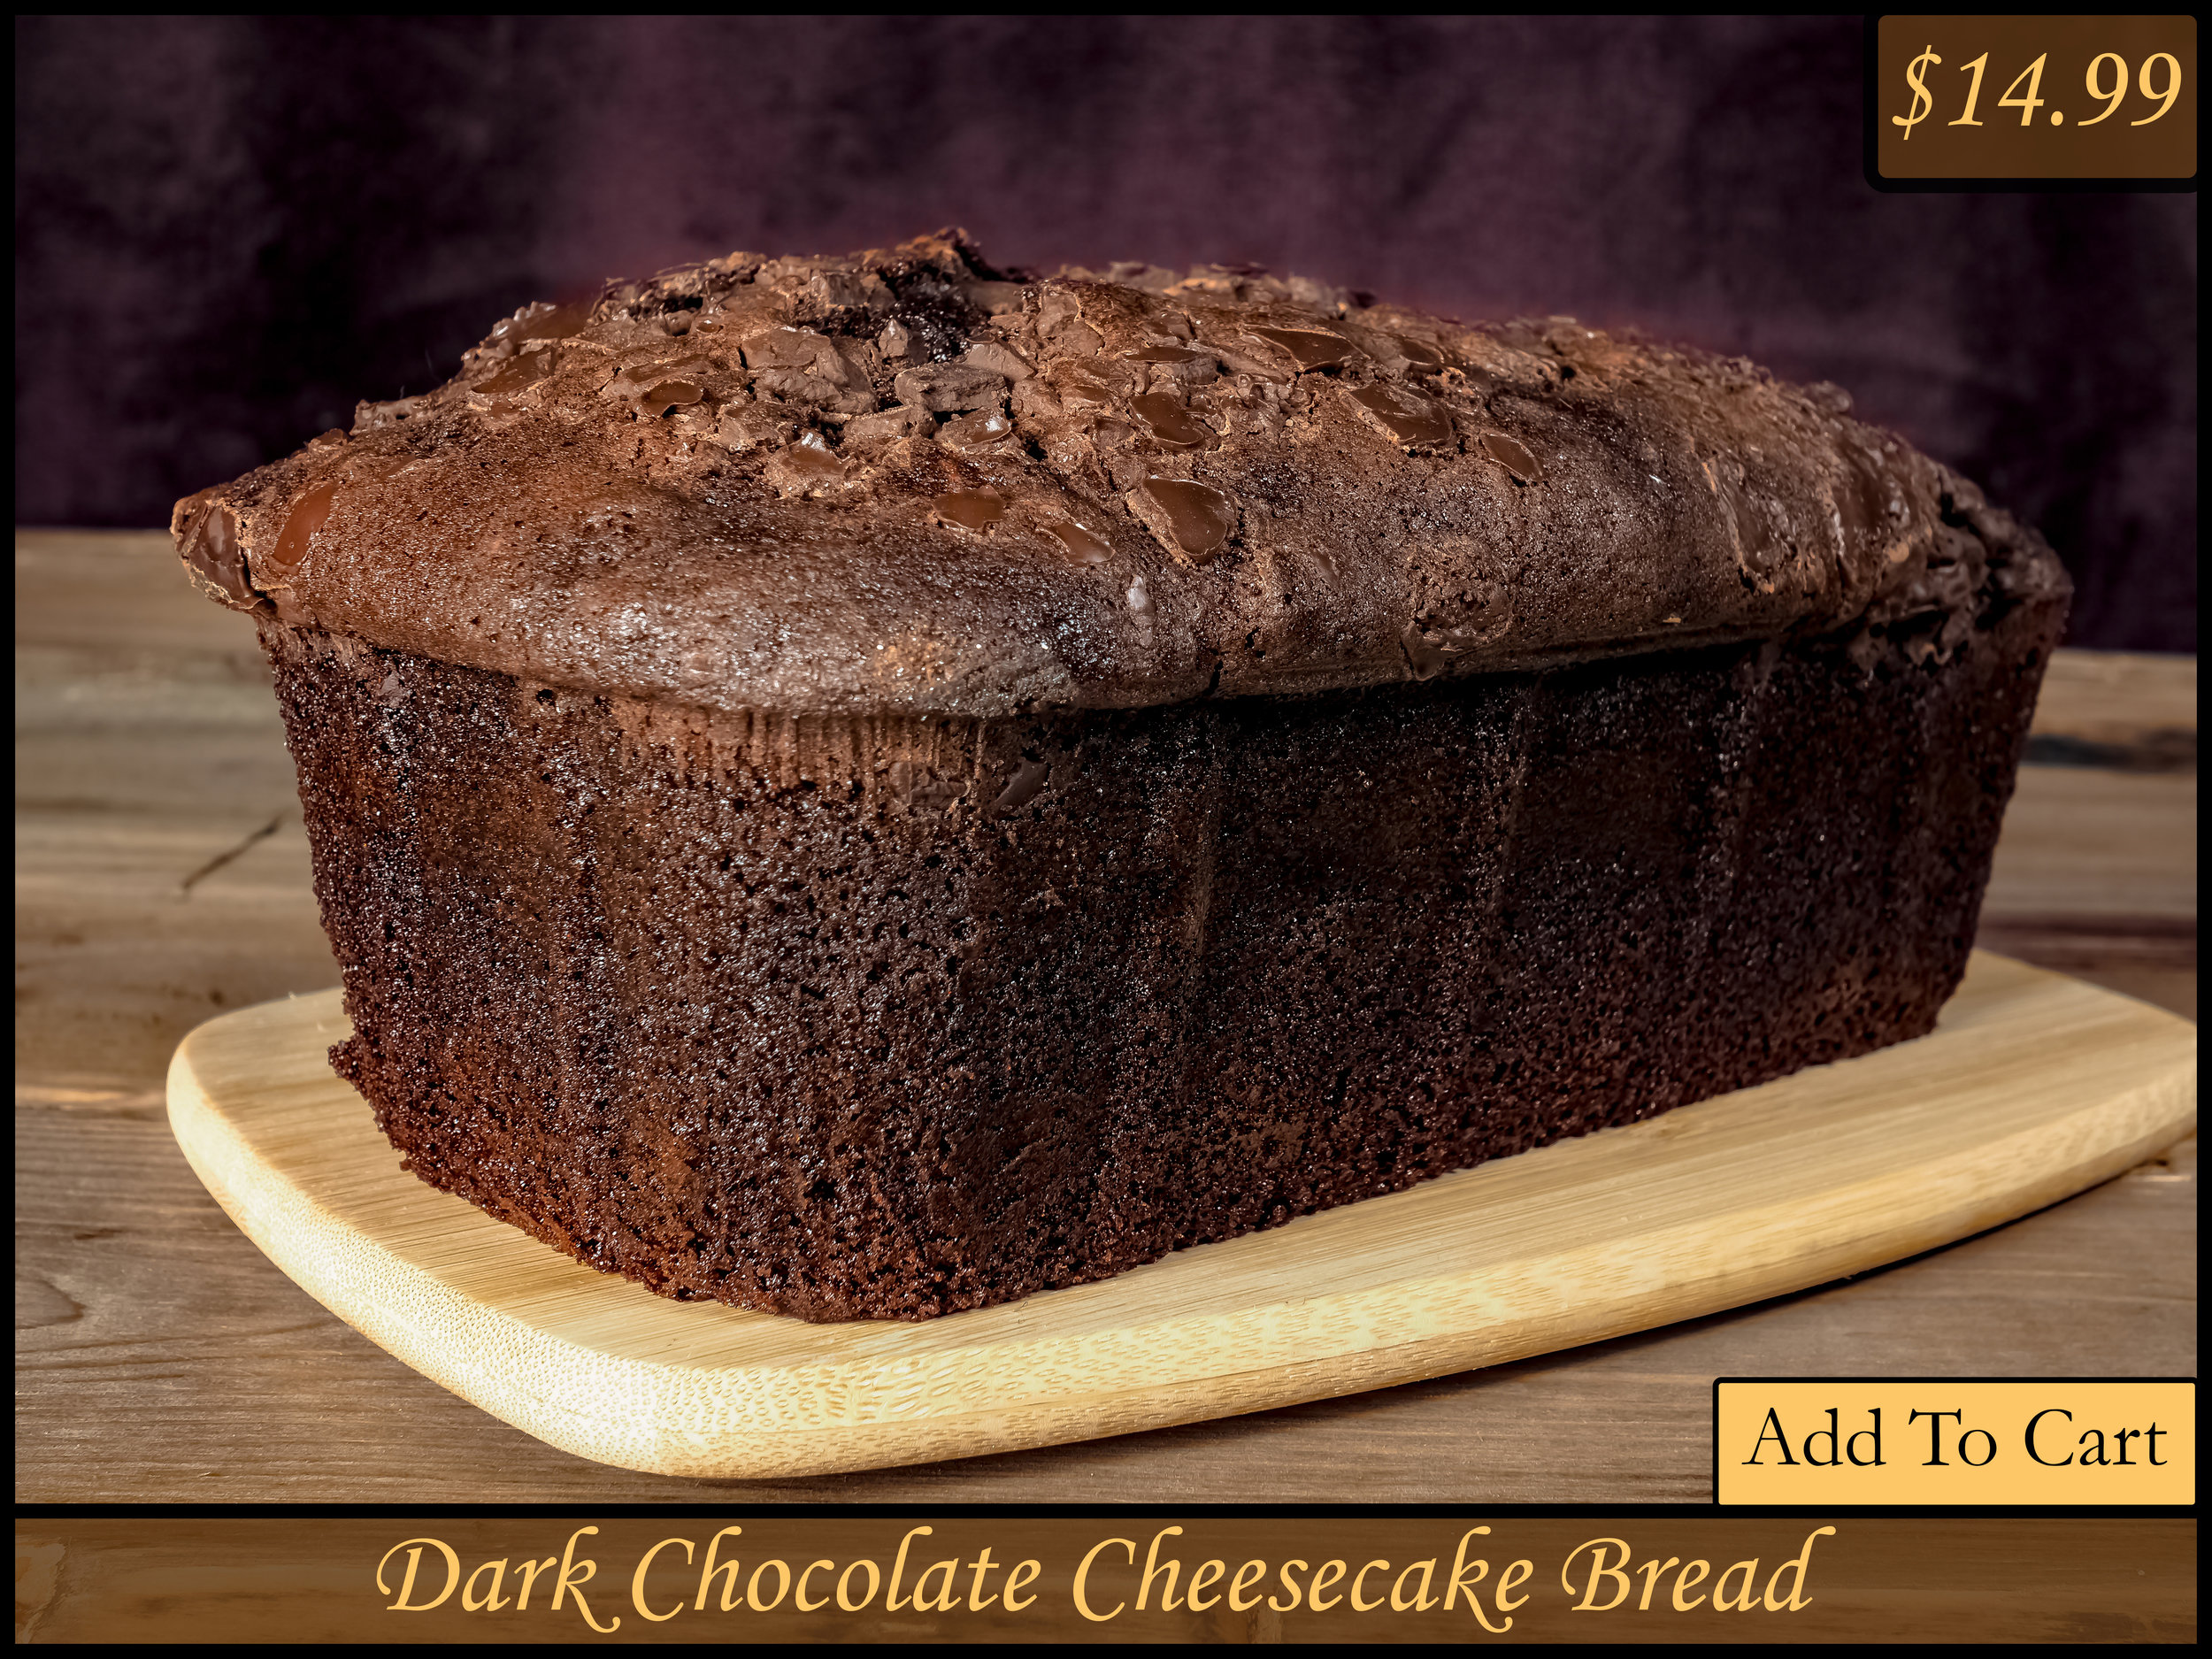 Dark Chocolate Cheesecake Bread.jpg